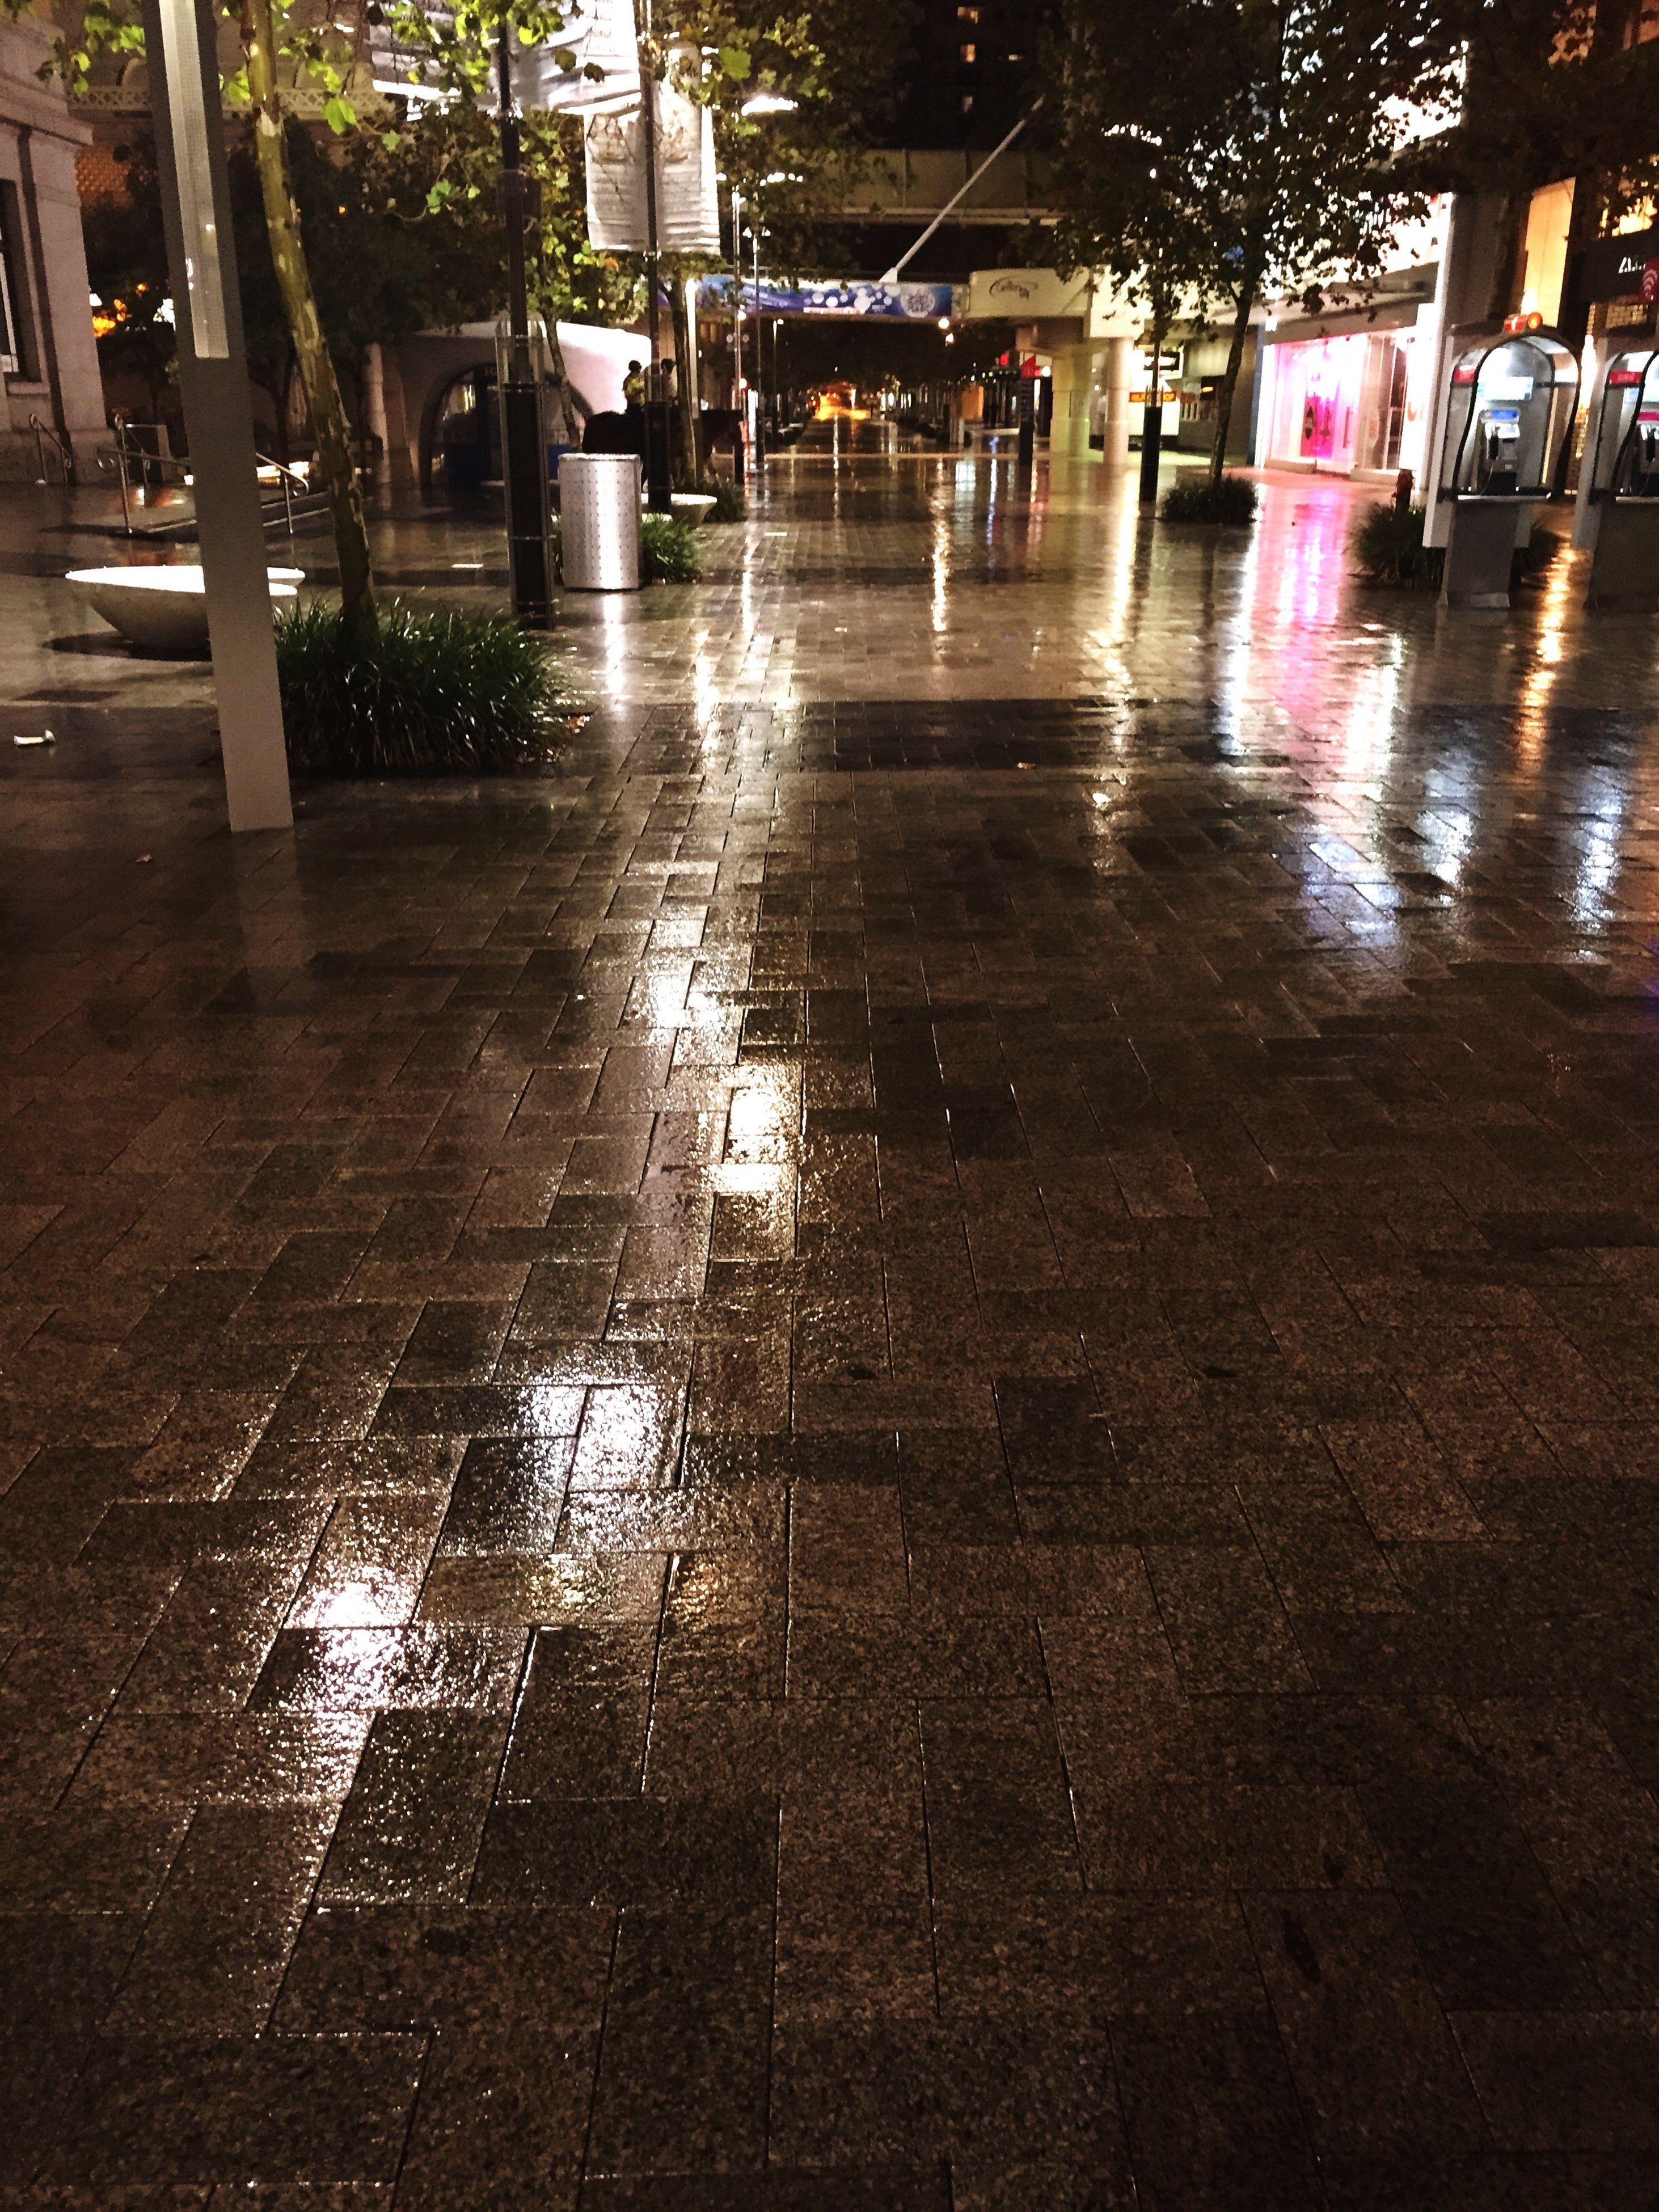 water, reflection, wet, street, building exterior, city, puddle, rain, built structure, architecture, night, tree, car, outdoors, no people, illuminated, road, sidewalk, high angle view, transportation